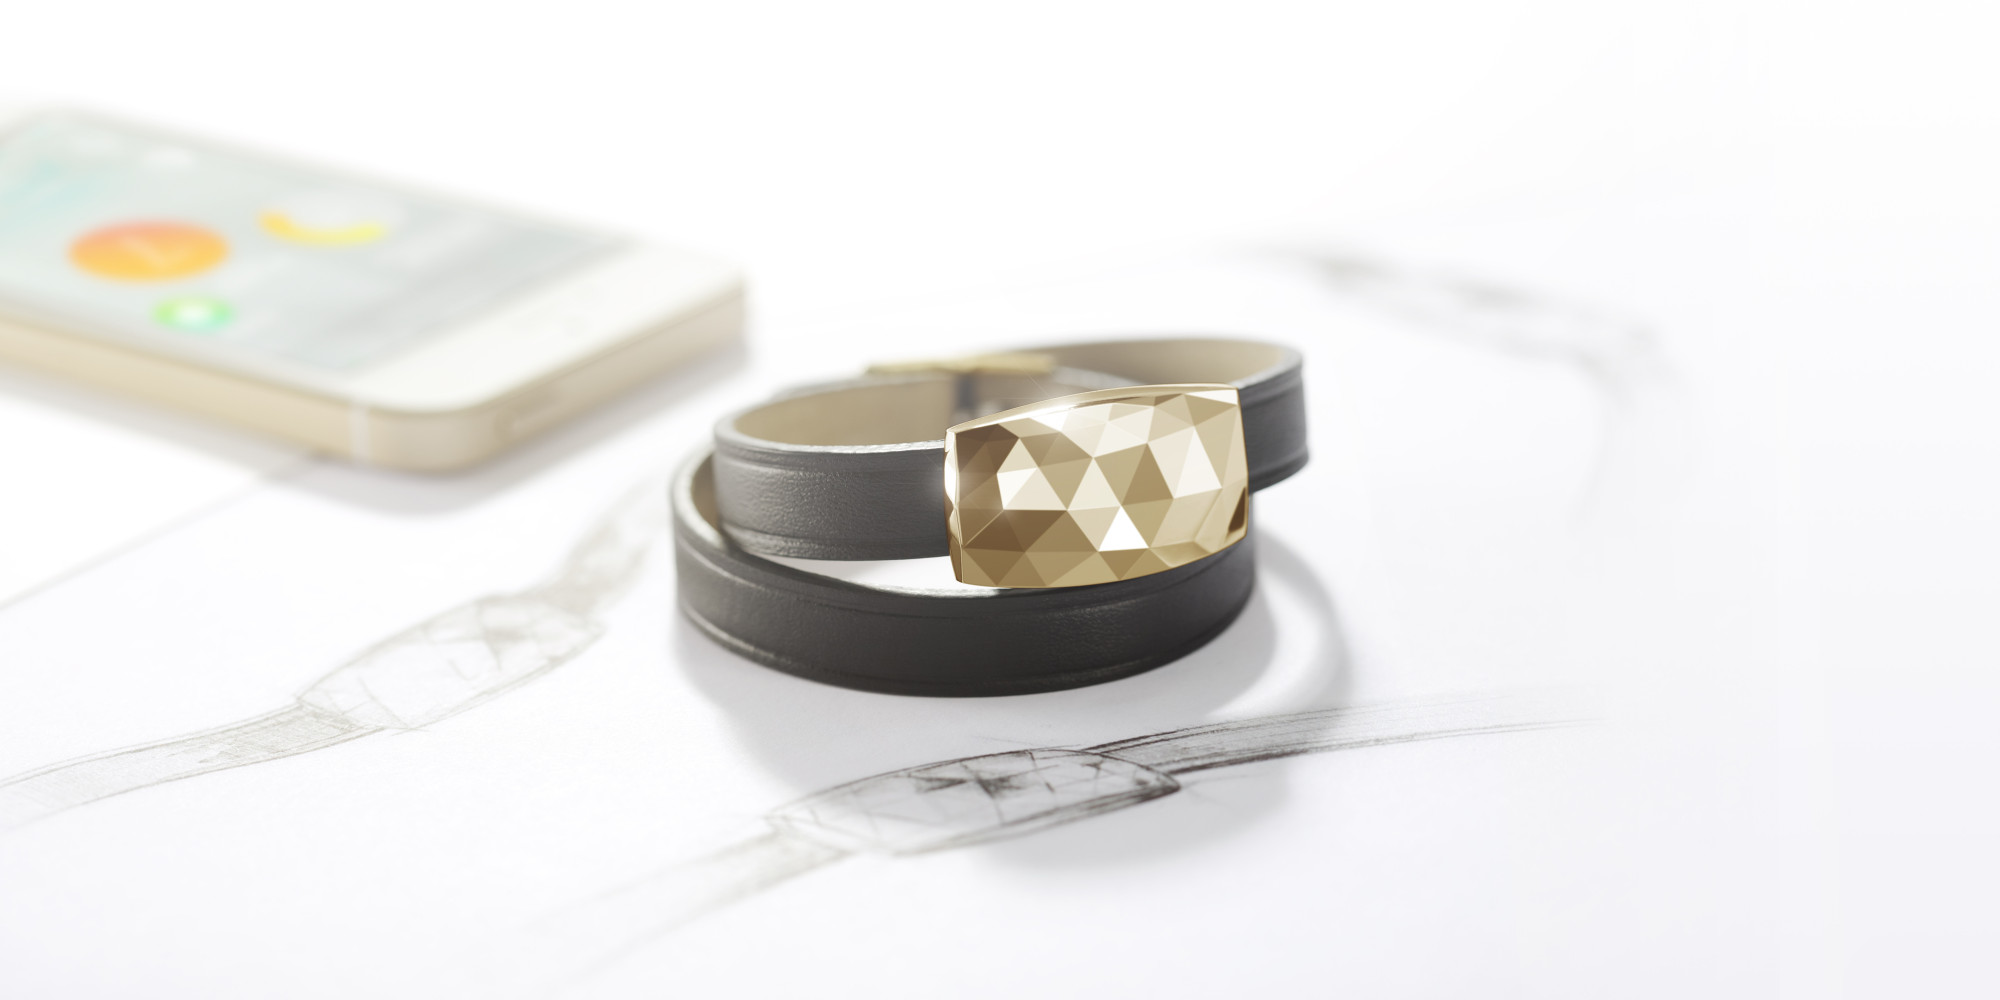 -- Netatmo's June bracelet pairs up with your smartphone to protect Mom from harmful sun exposure. The device's gem reads the exposure of UV rays throughout the day and, in conjunction with its app, informs her of these readings and gives advice...